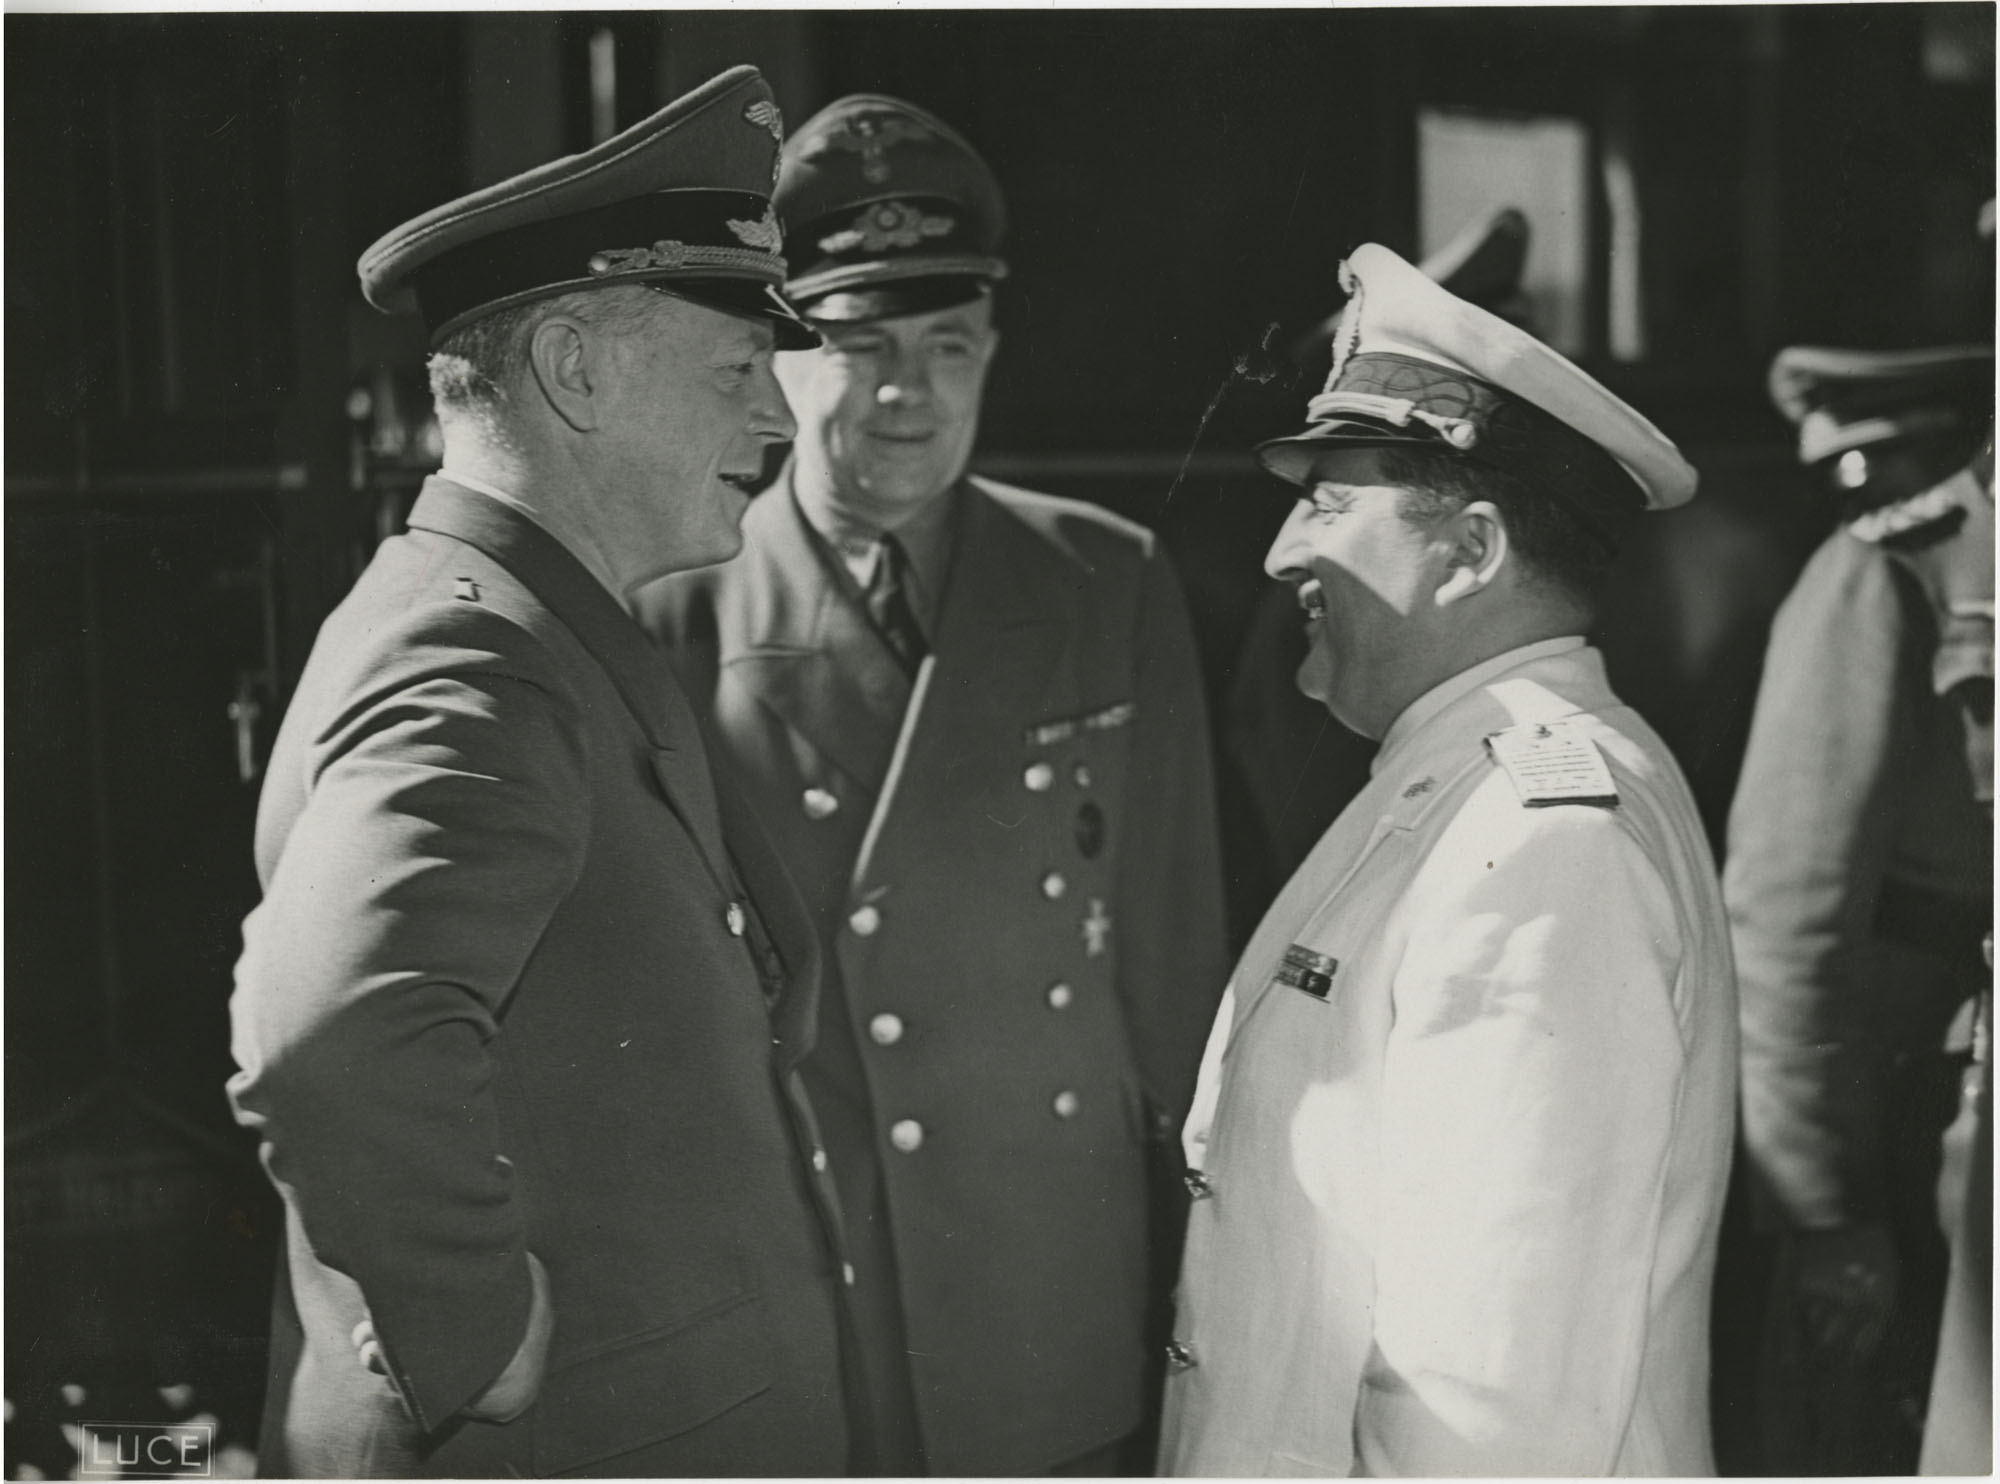 Military officials at a train station, Photograph 5